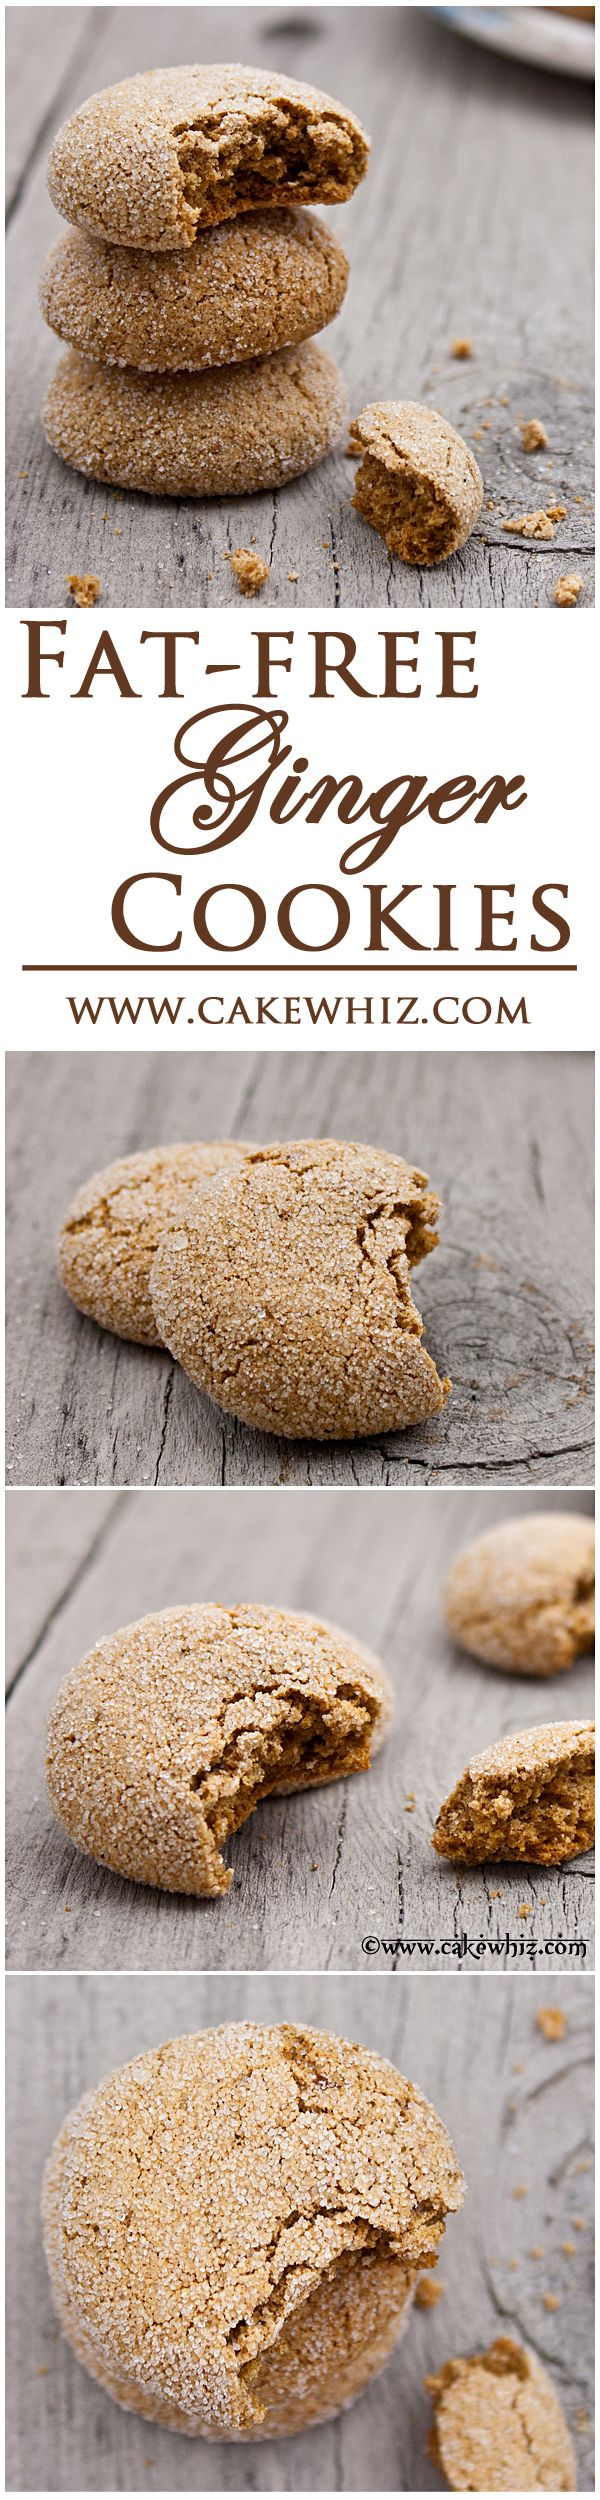 FAT-FREE GINGER COOKIES... inspired by David Lebovitz's recipe. These cookies are spicy, chewy and crunchy! From cakewhiz.com #delicious #recipe #cake #desserts #dessertrecipes #yummy #delicious #food #sweet